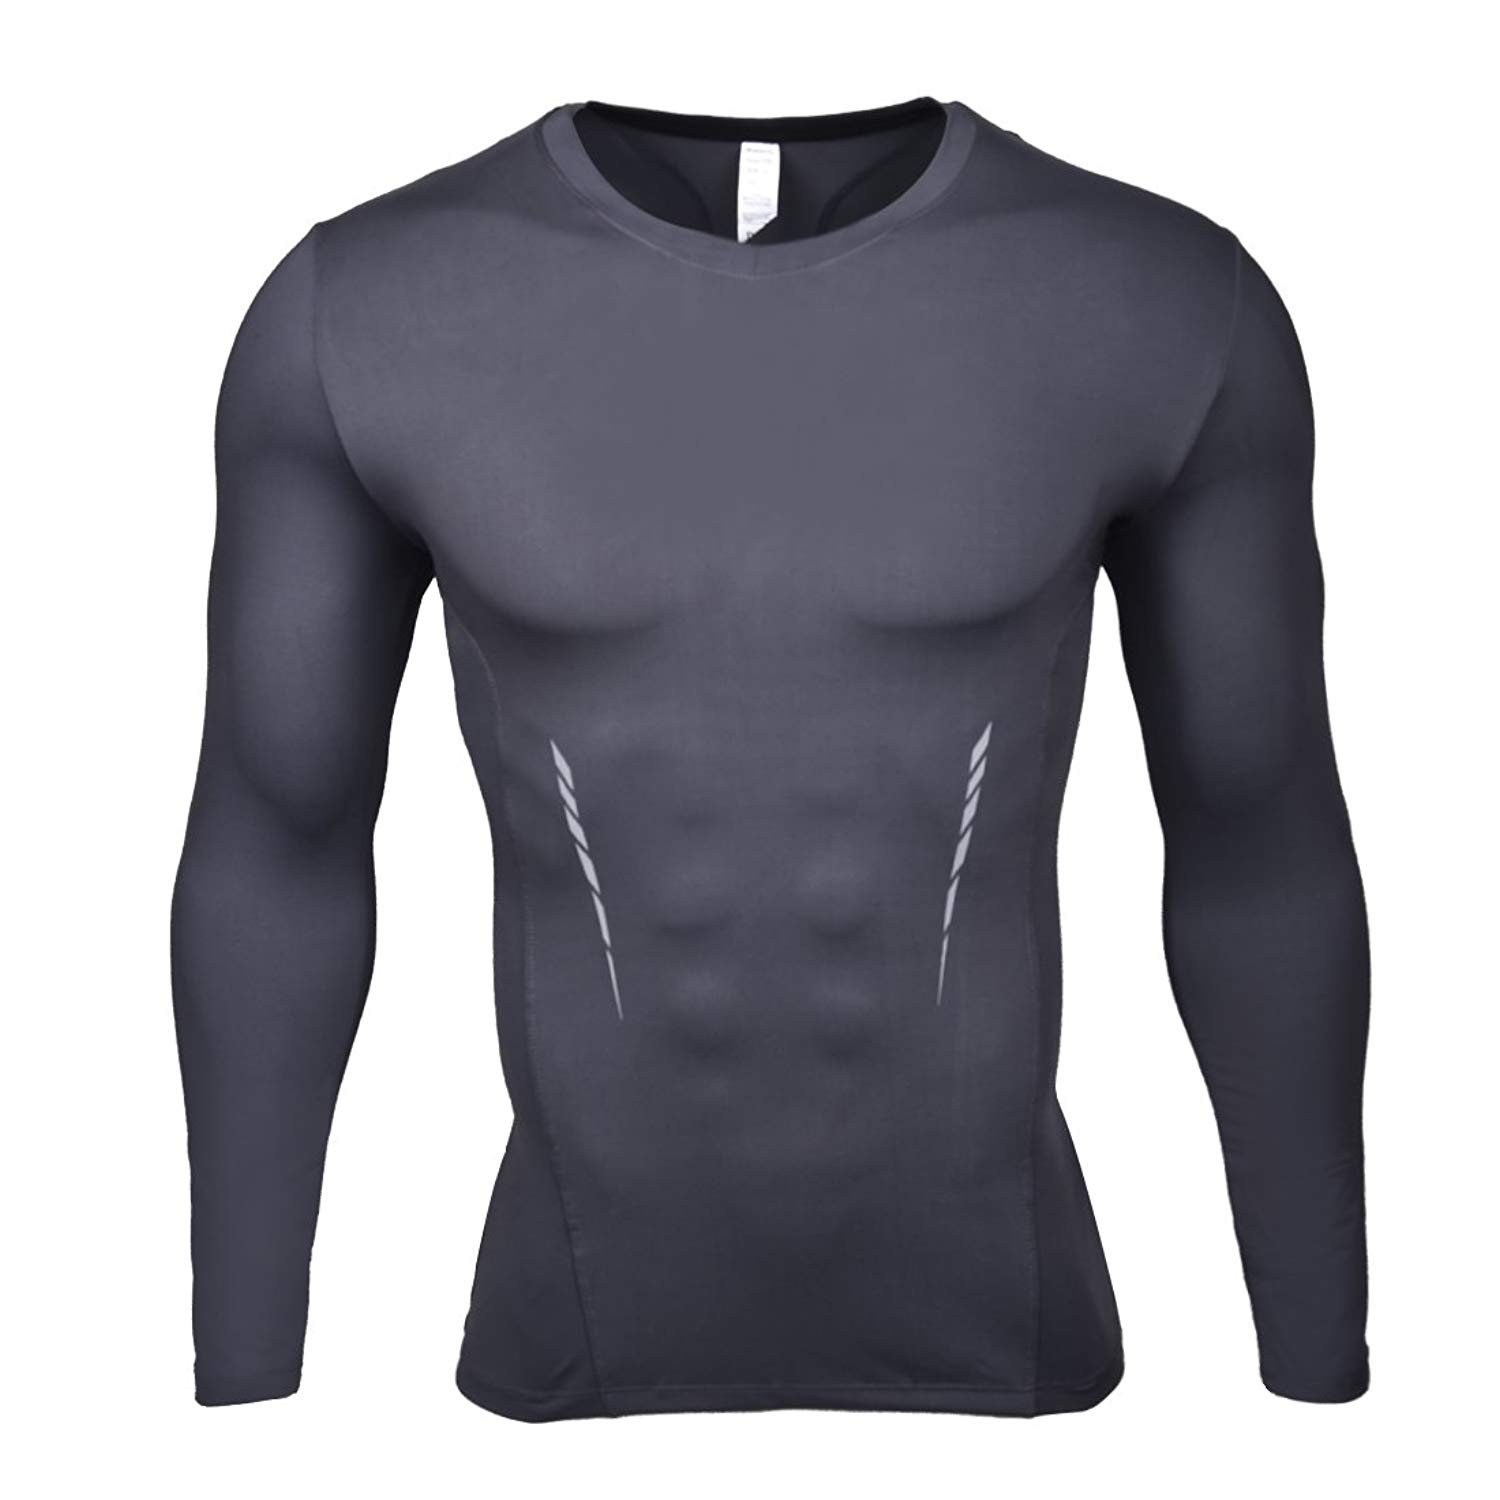 SEVENWELL Men's Dri Fit Compression Shirts Breathable Long Sleeve Gym Slim Fitness Base Layer Tops S-XXL